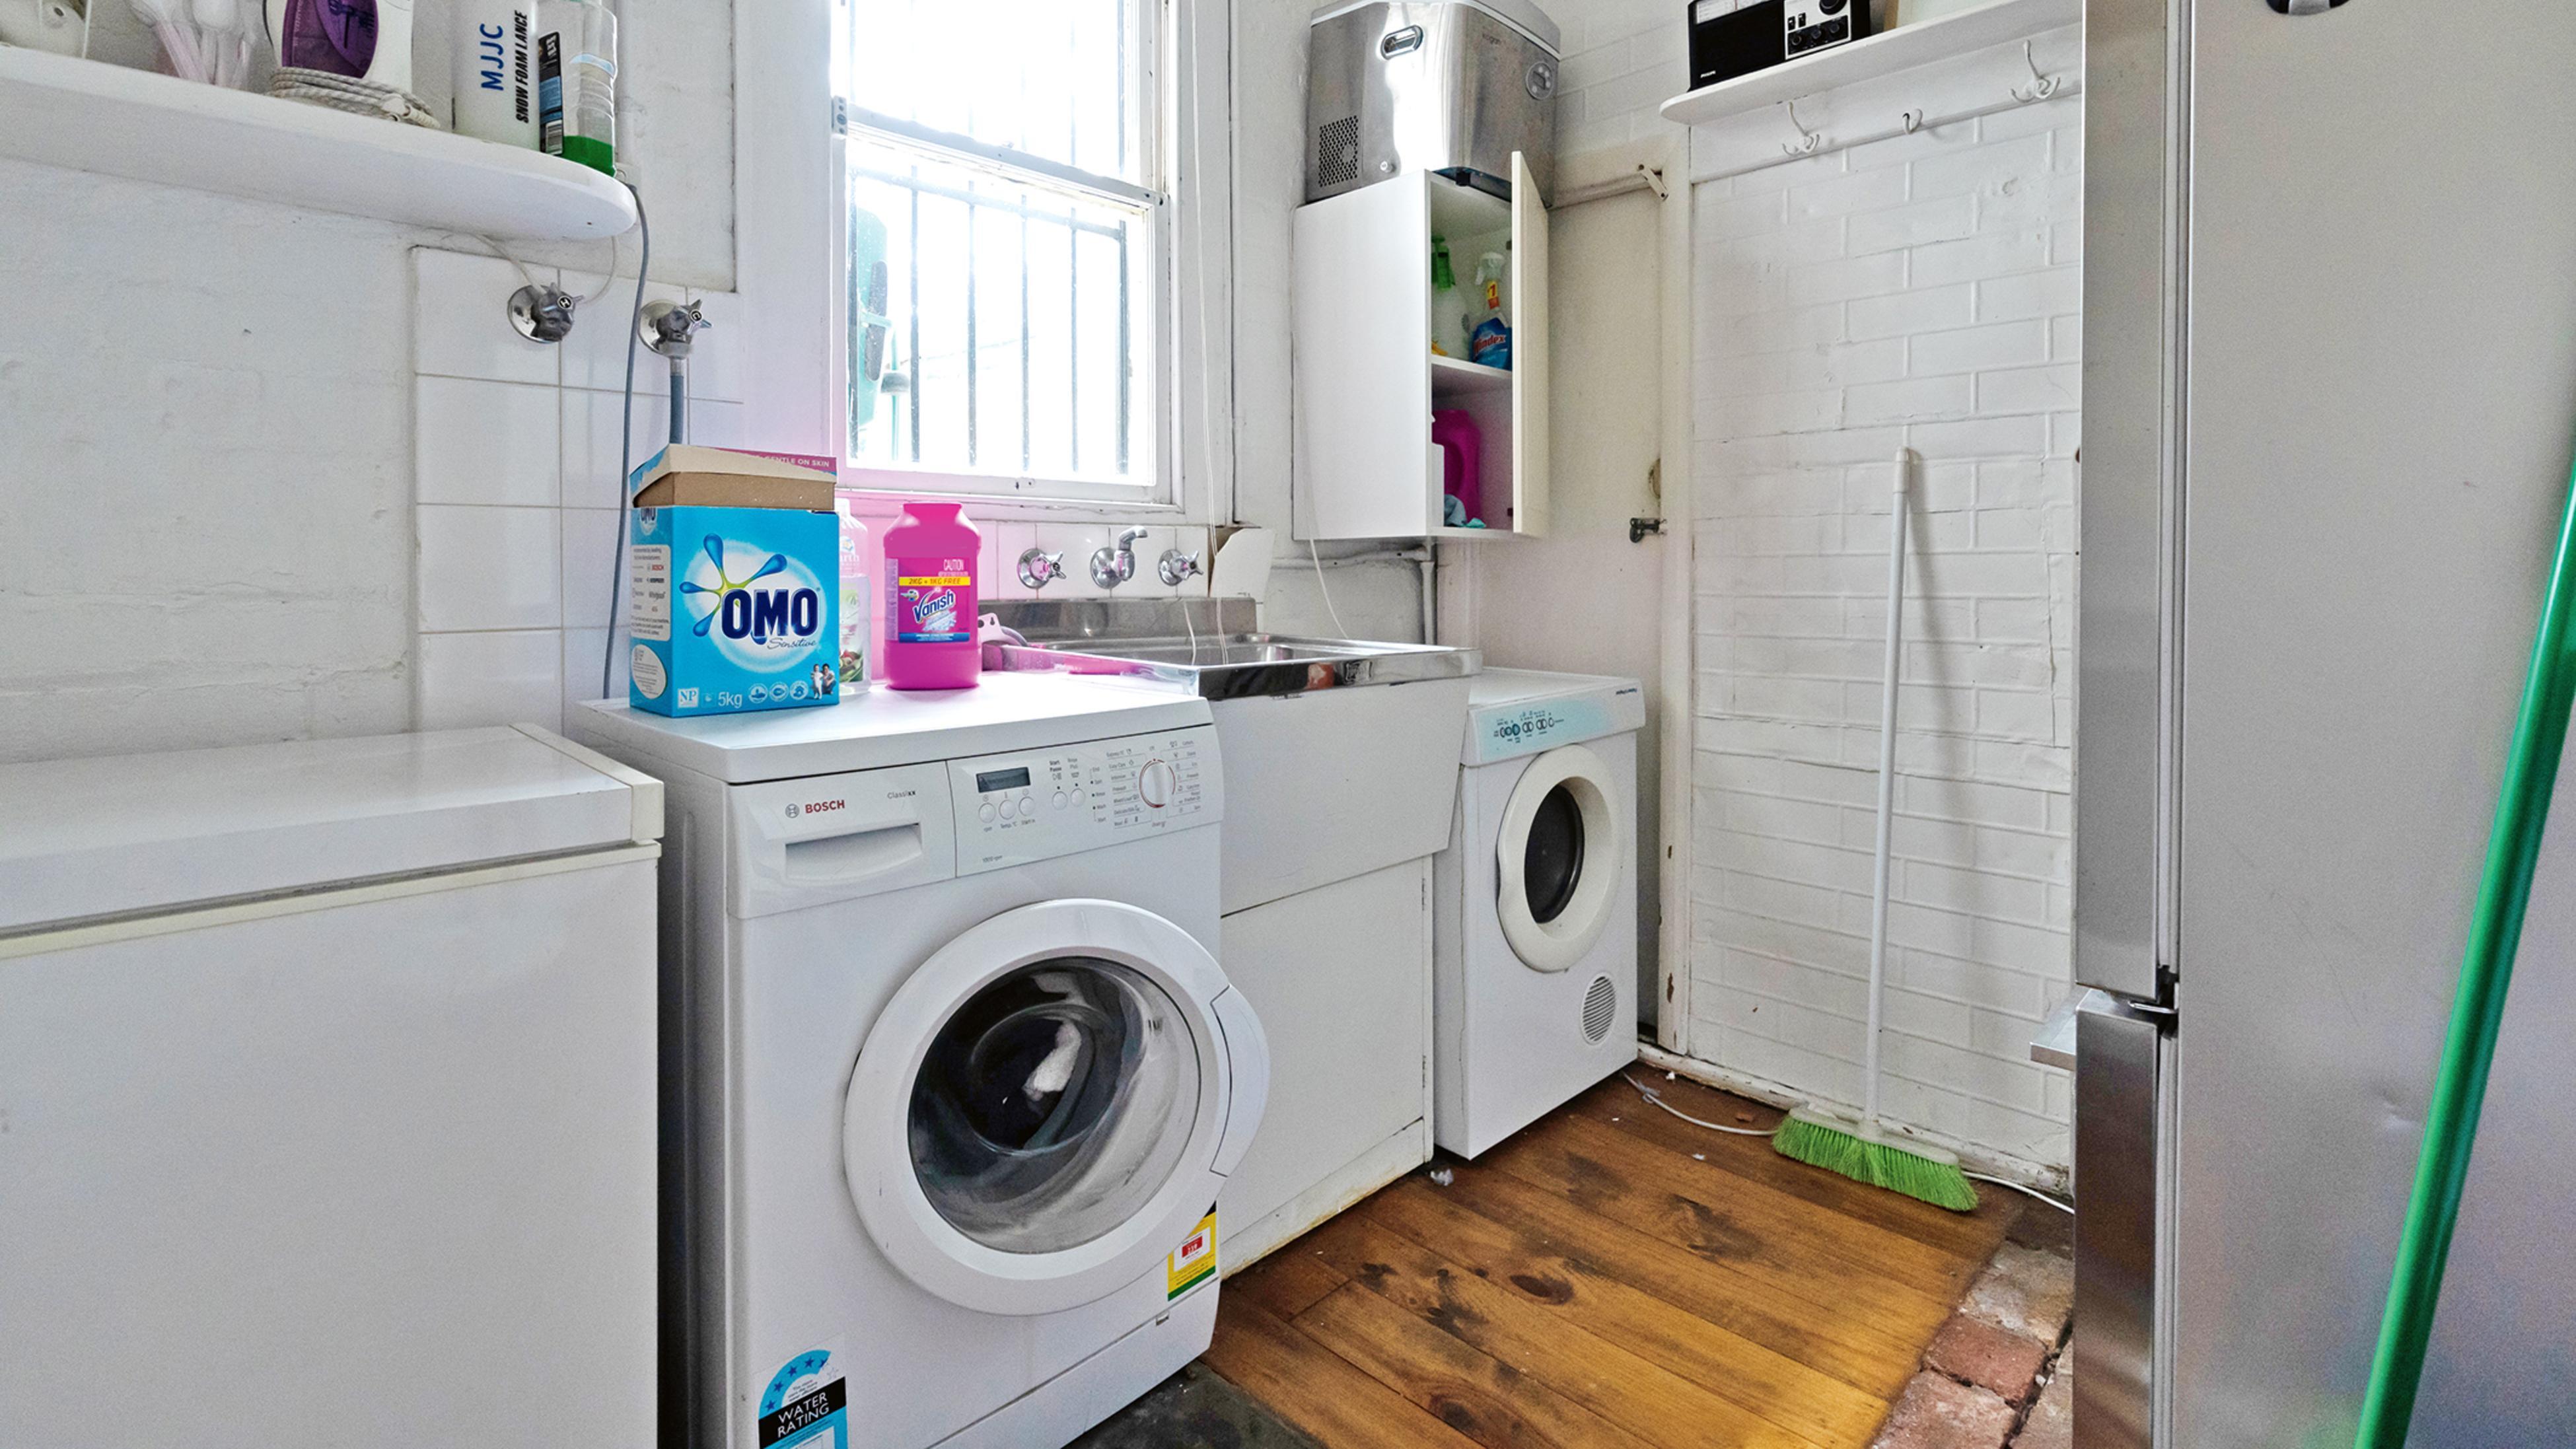 Old laundry with bland colour scheme featuring washing machines, dryers and shelves full of detergent and other cleaning products.